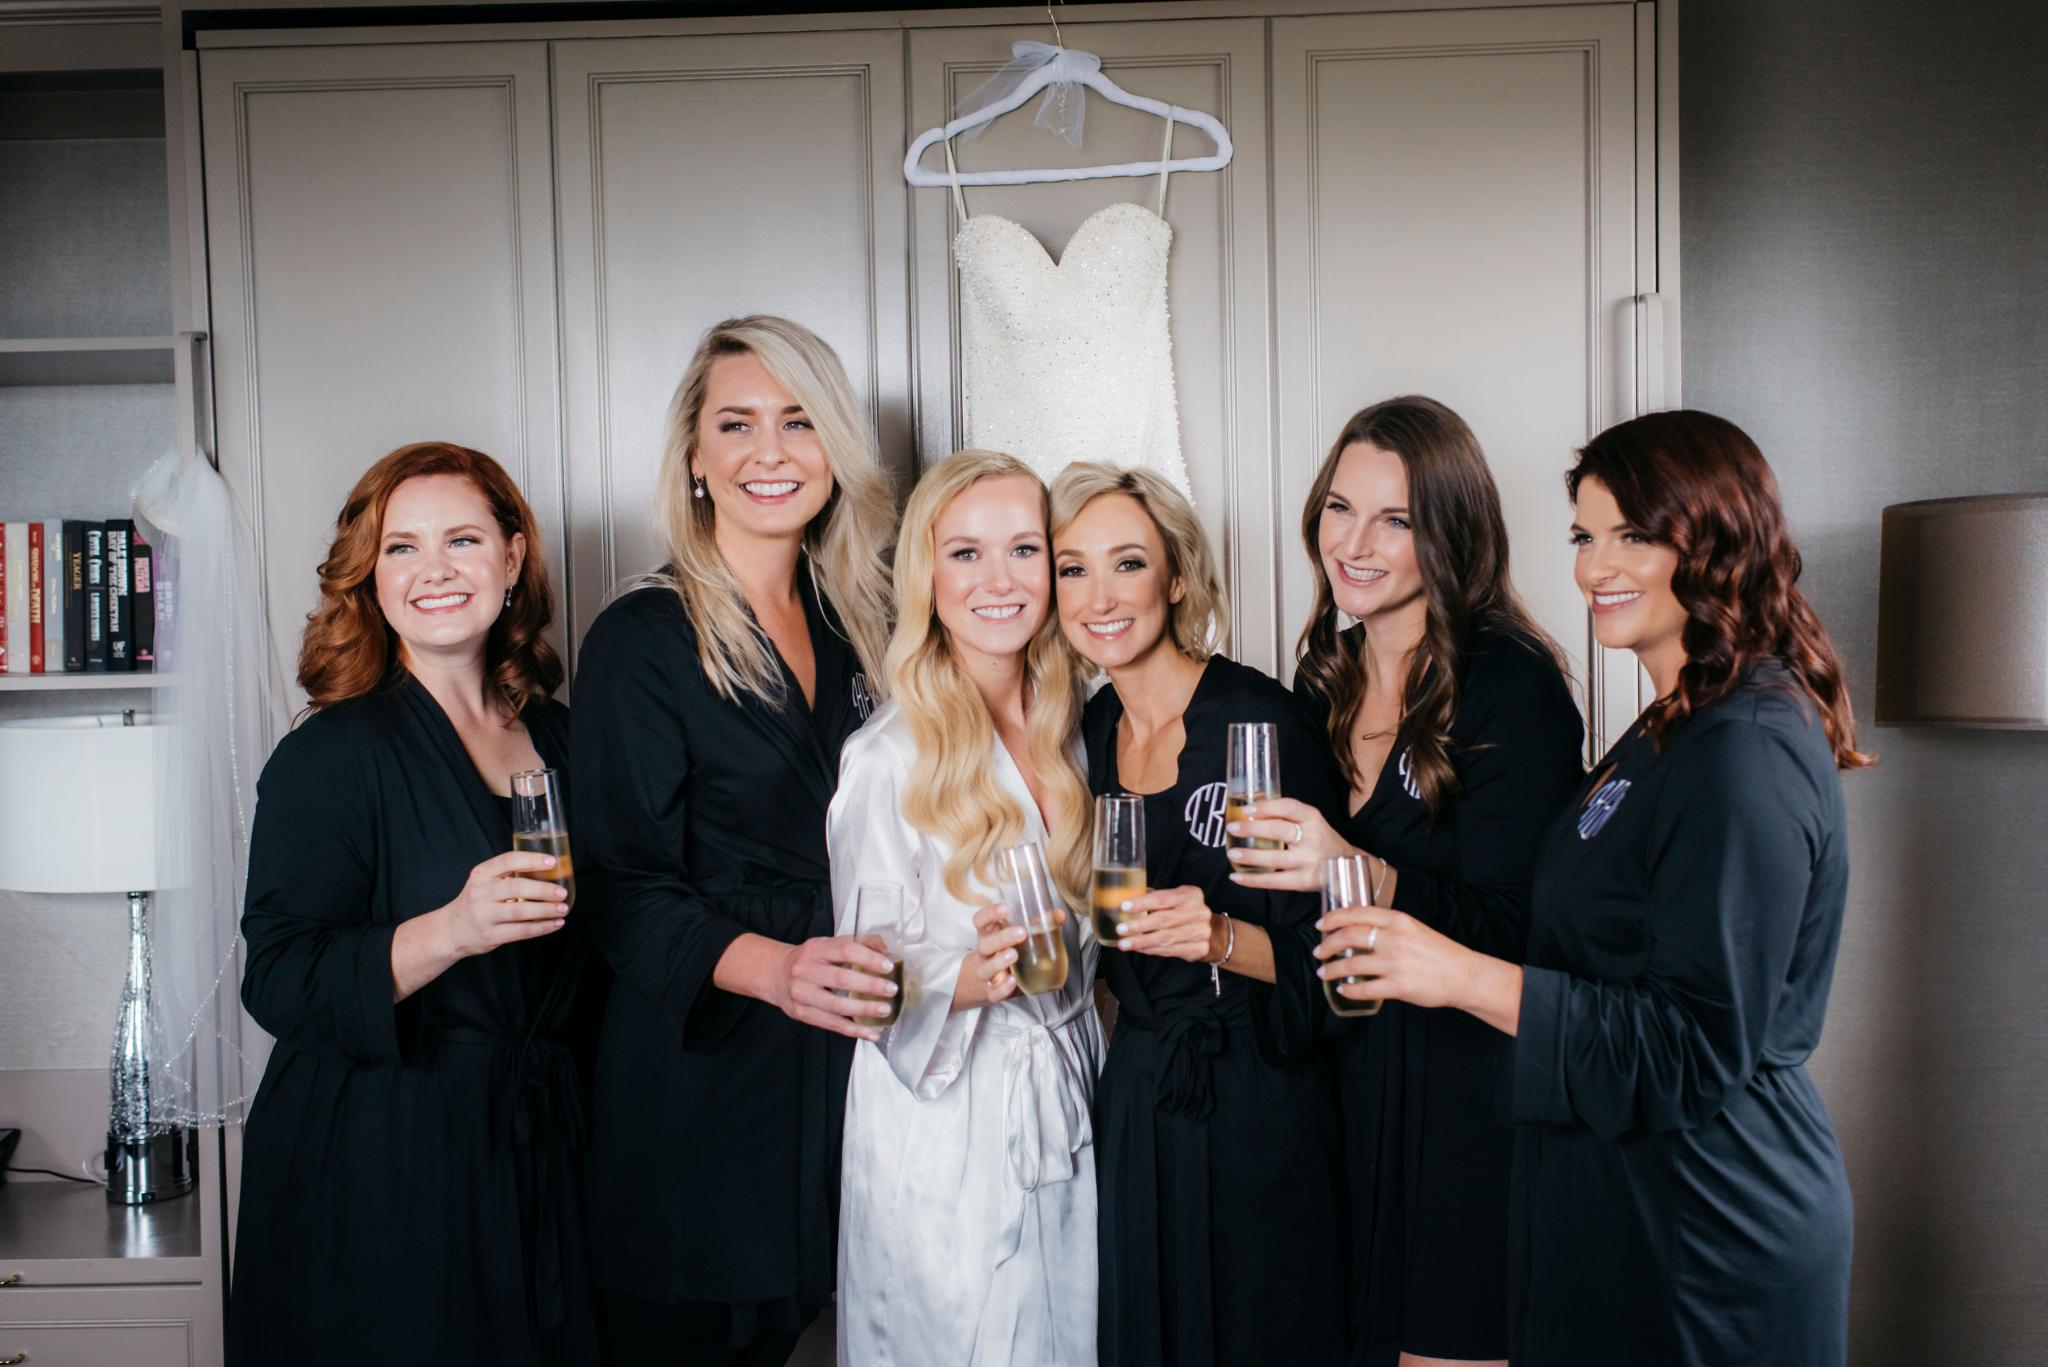 annie tommy venue SIX10 chicago, il wedding bride and bridesmaids getting ready